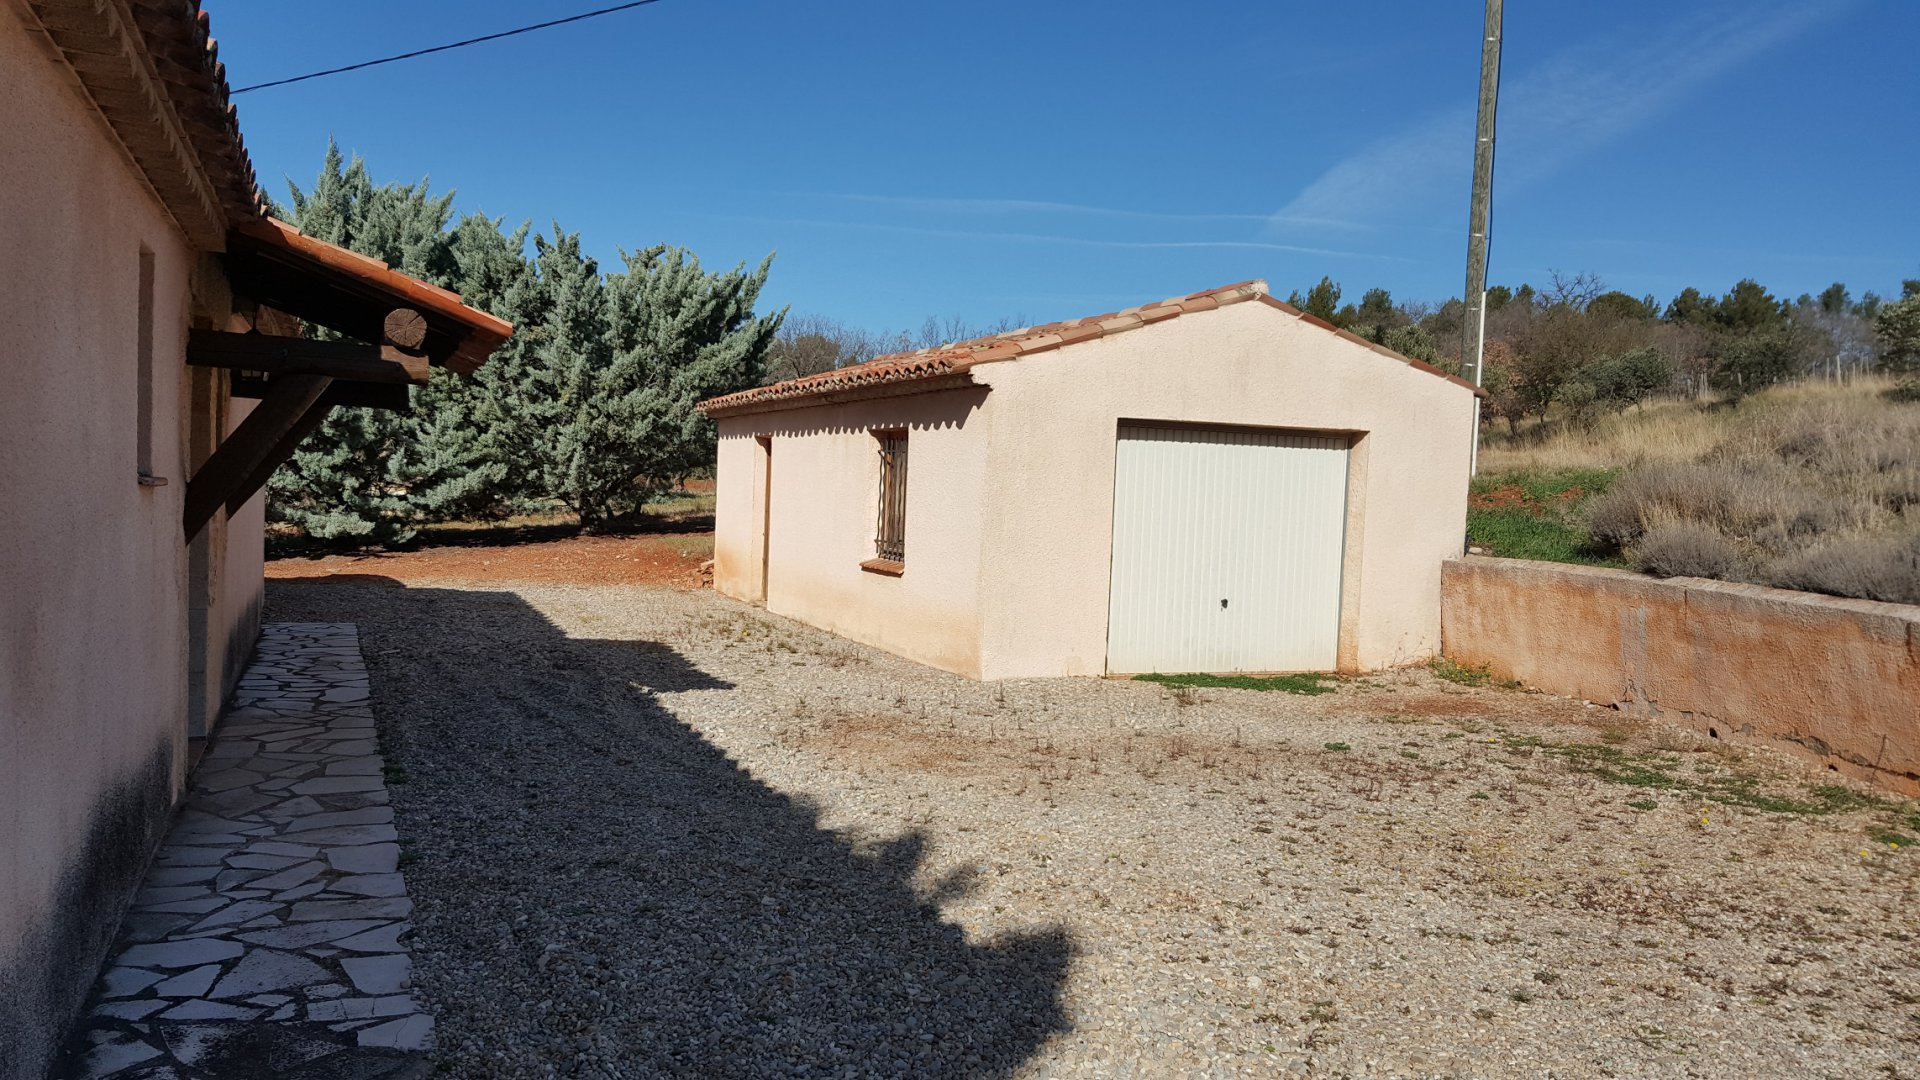 Nice house in Aups 72.76 m² + pool on 2900 m² of land